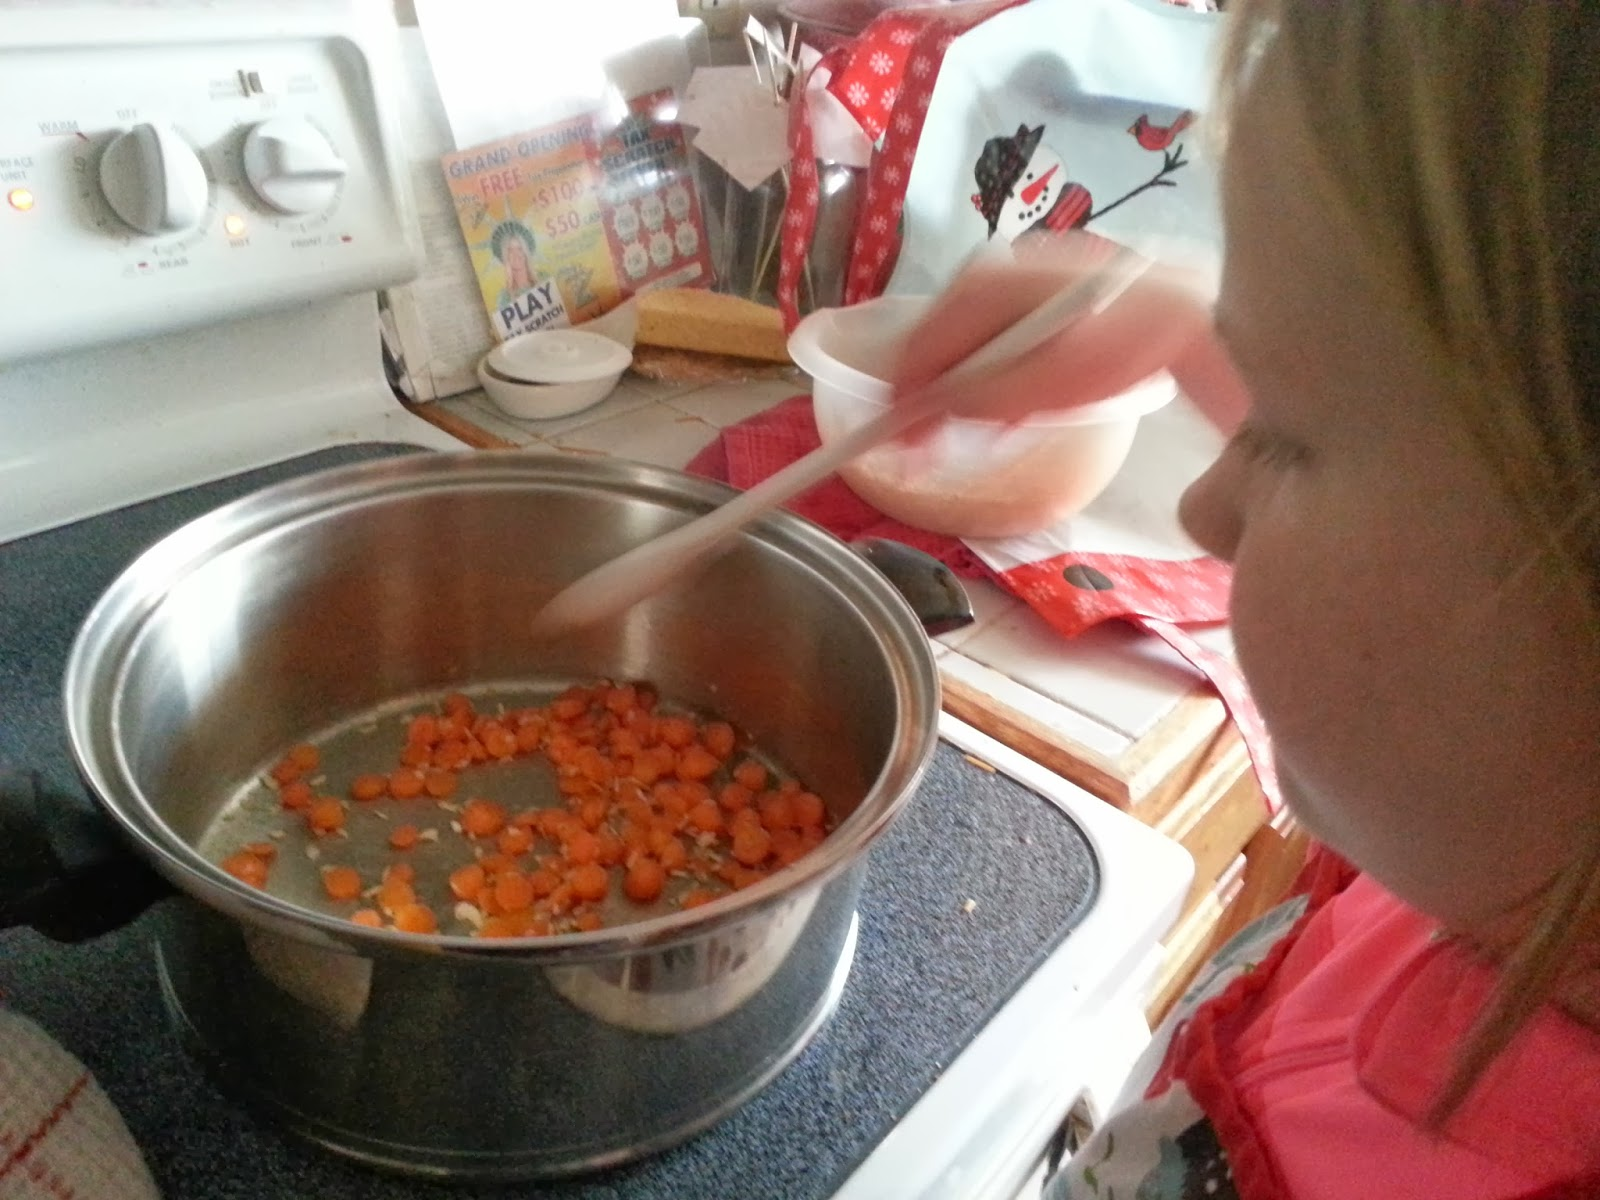 Starting to cook the veggies for the soup. Our last meal together was completely different so this was something new for her to do as well.